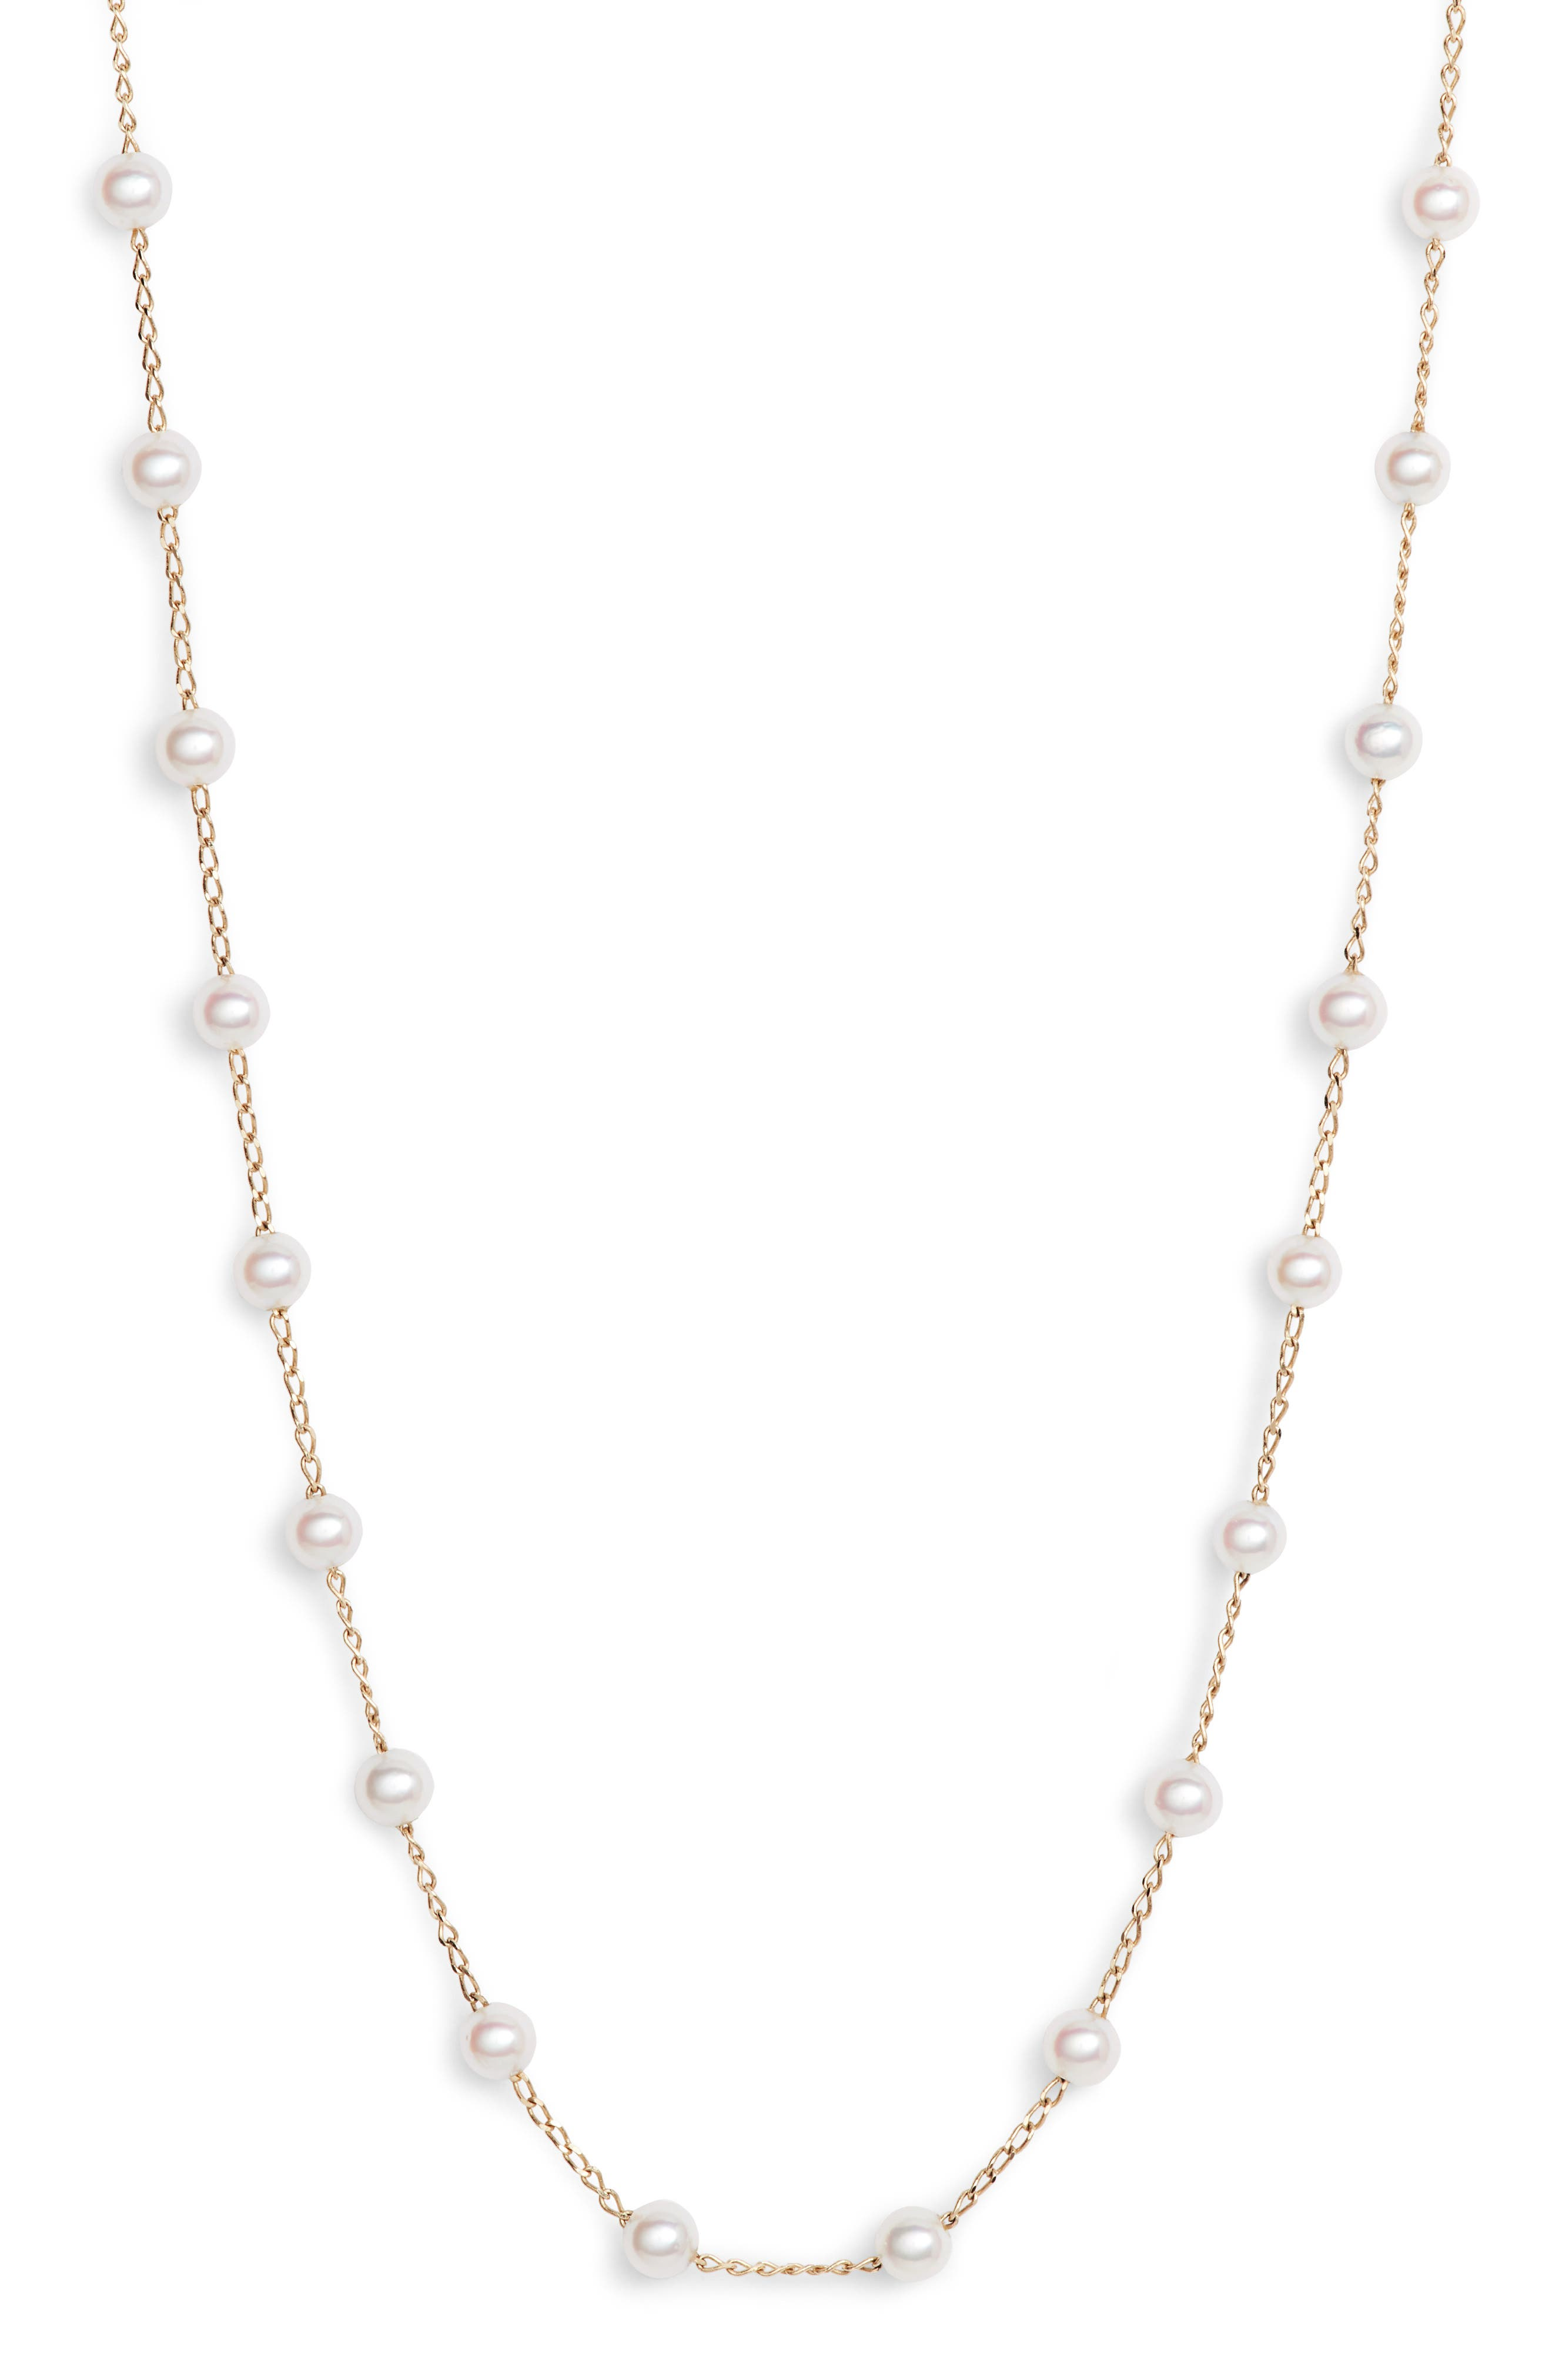 Pearl Choker Necklace,                             Alternate thumbnail 3, color,                             Yellow Gold/ Pearl